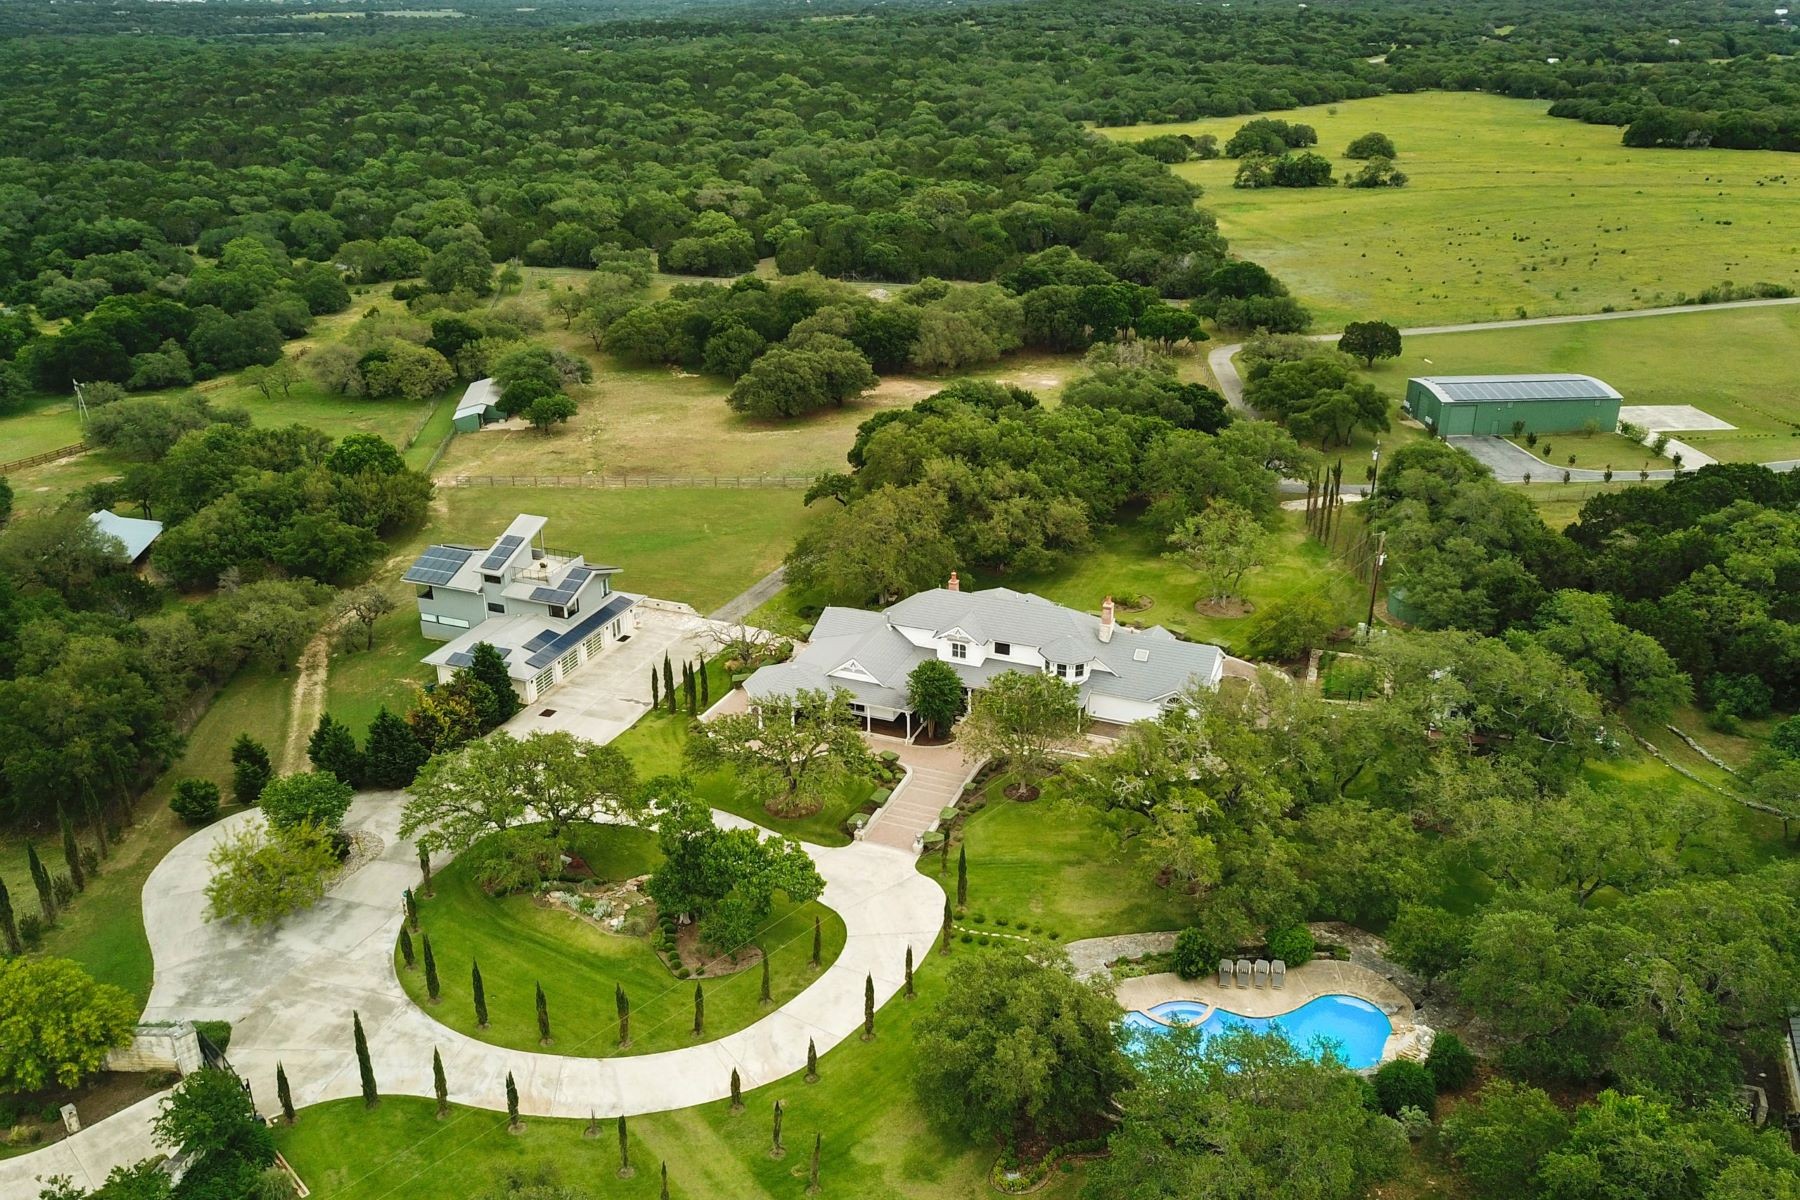 Single Family Homes for Sale at Modern Farmhouse with Executive Retreat 690 Autumn Lane Dripping Springs, Texas 78620 United States